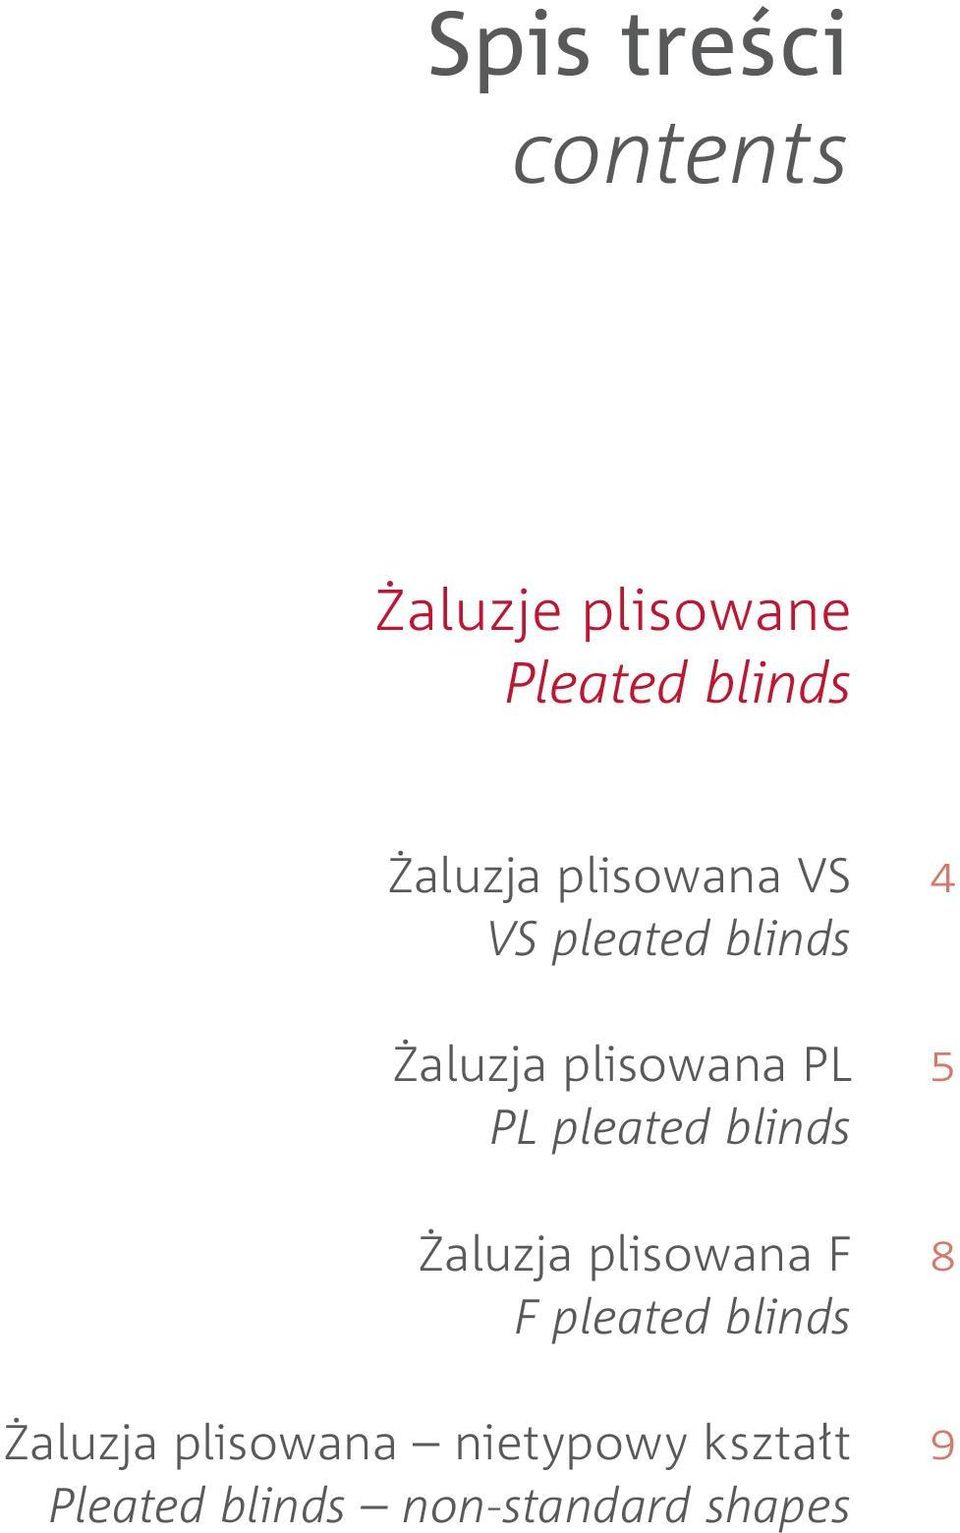 pleated blinds Żaluzja plisowana F F pleated blinds Żaluzja